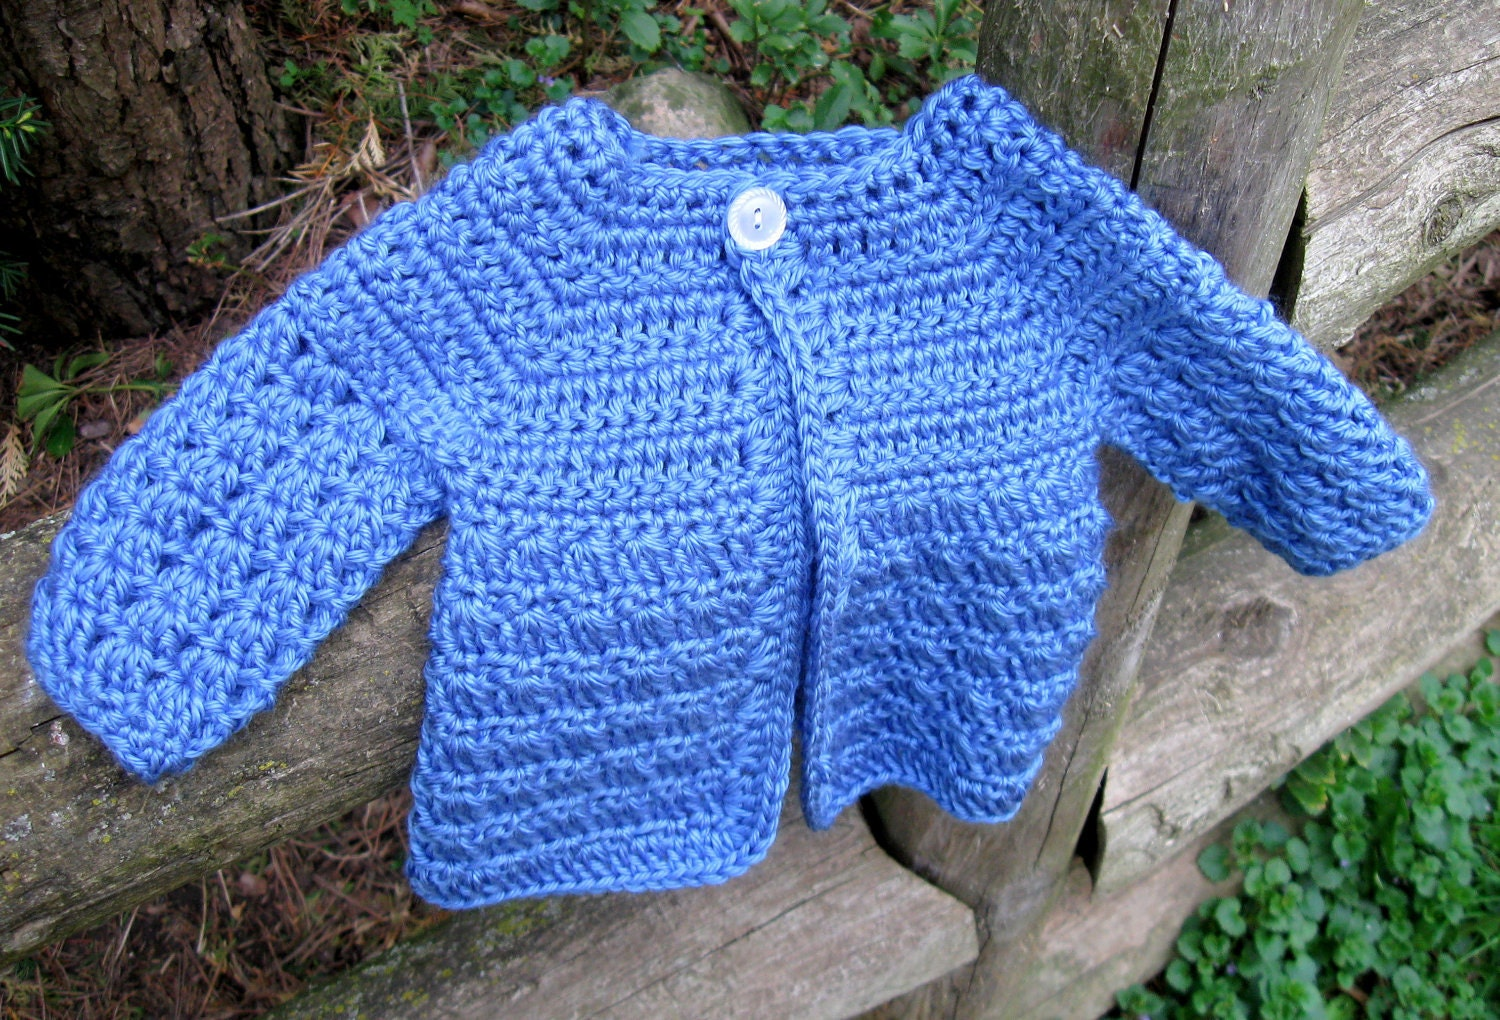 Crochet Baby Boy Sweater Free Patterns : Crochet Patterns Baby Sweater